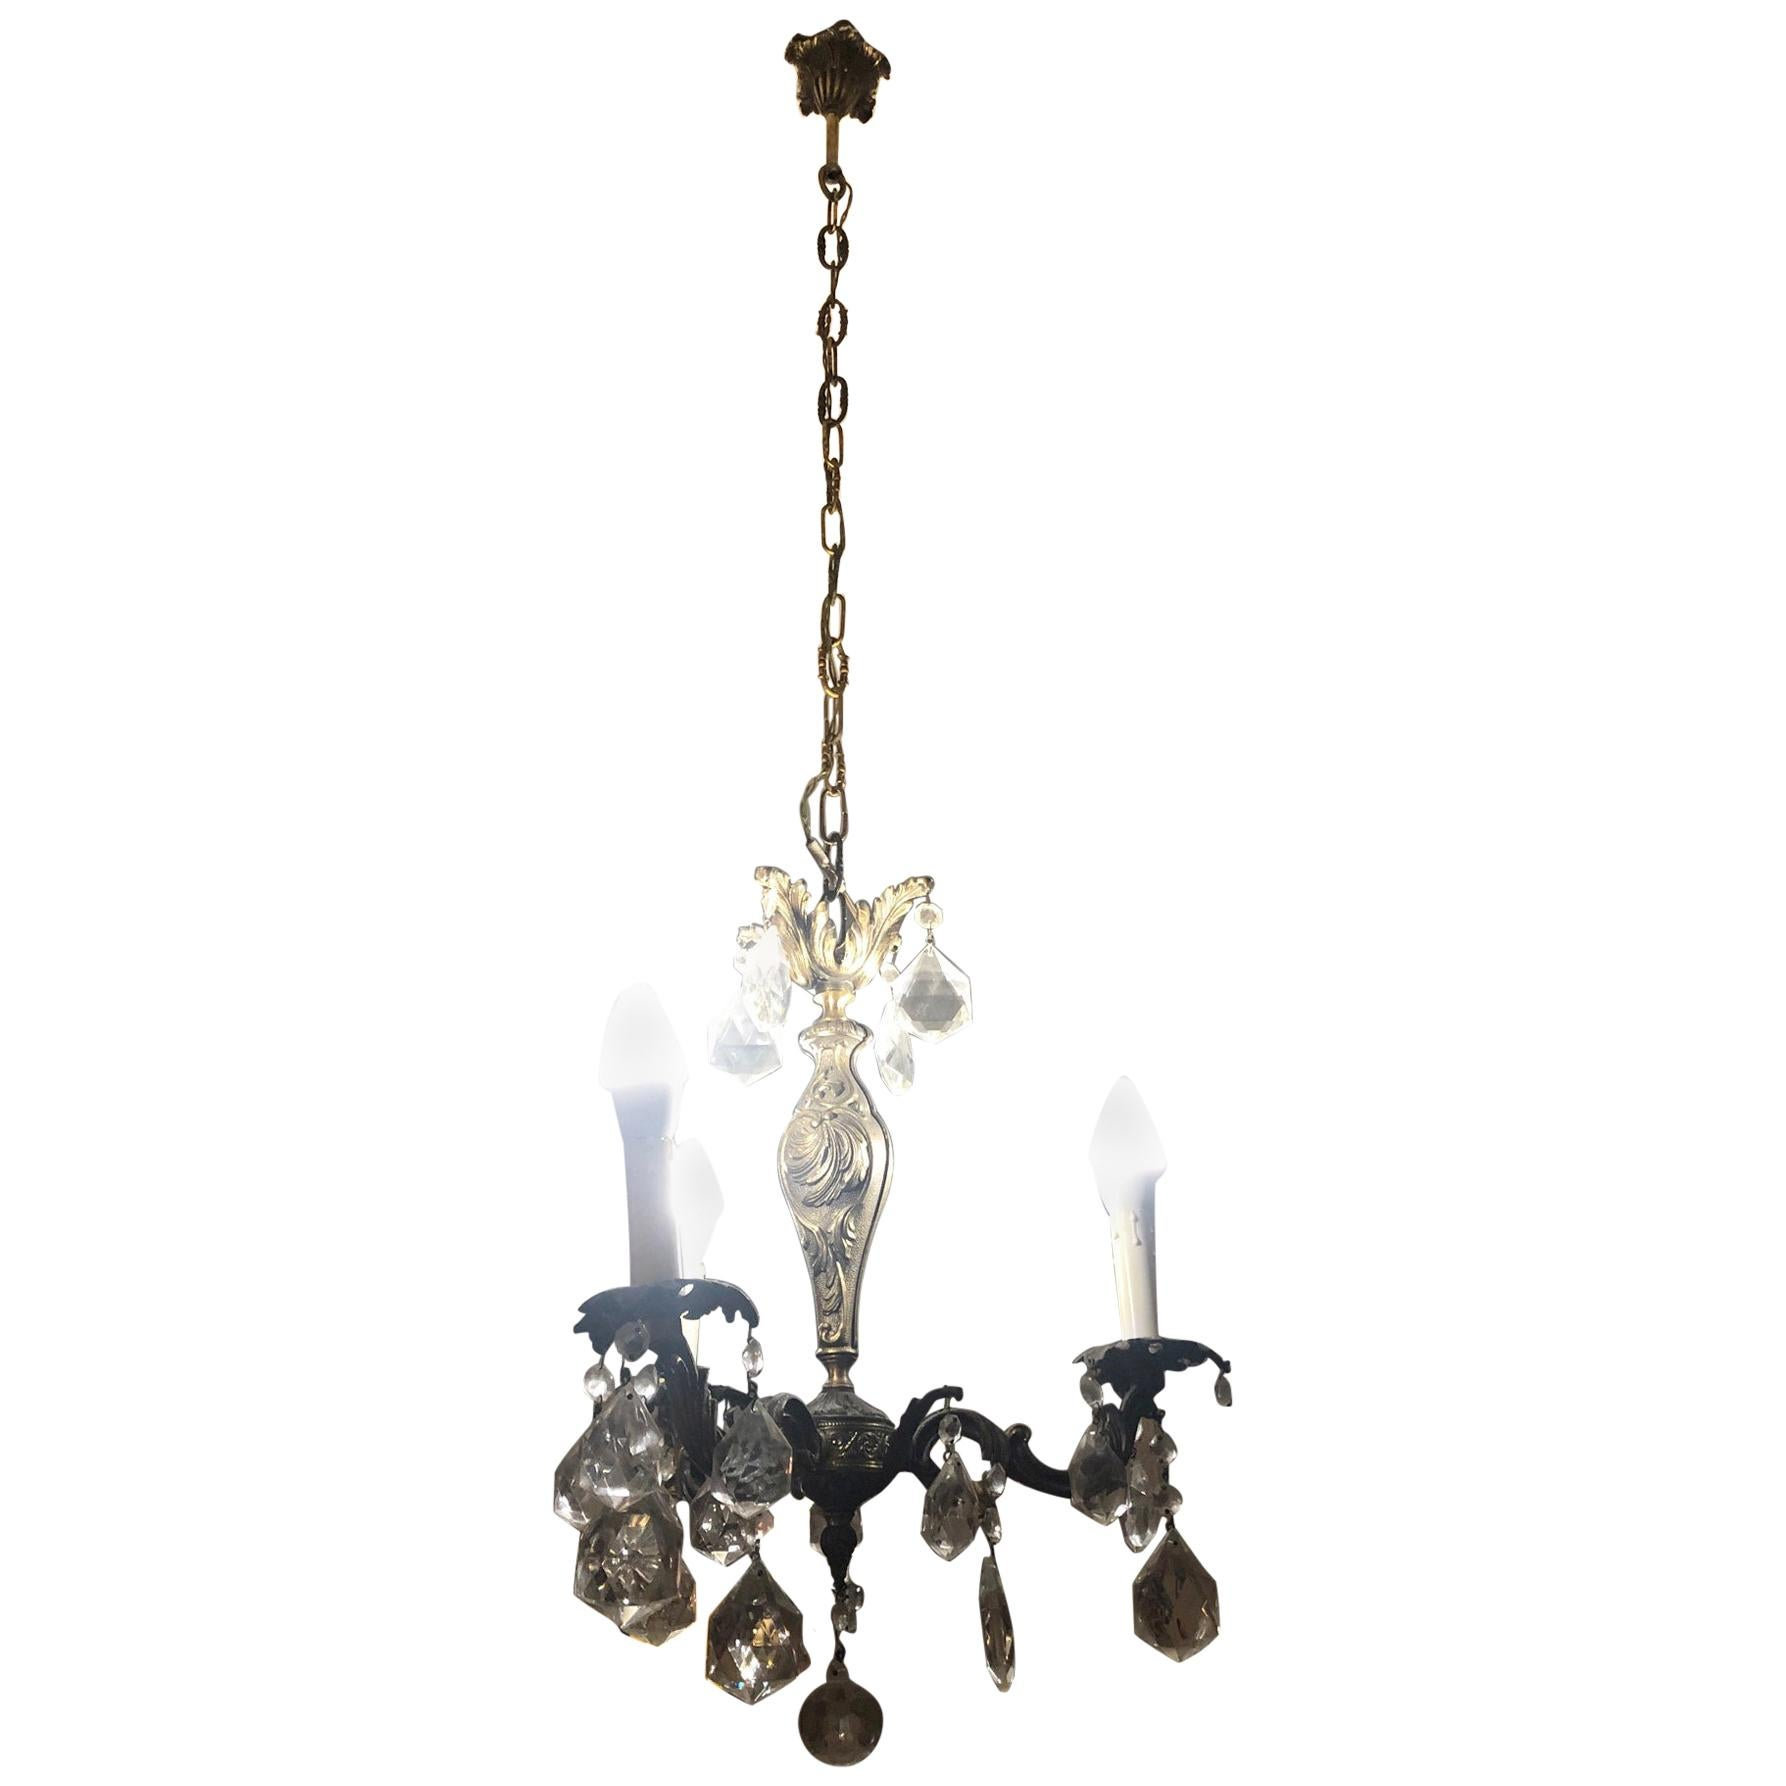 1960s Chandelier with Glass Pendants, Italy